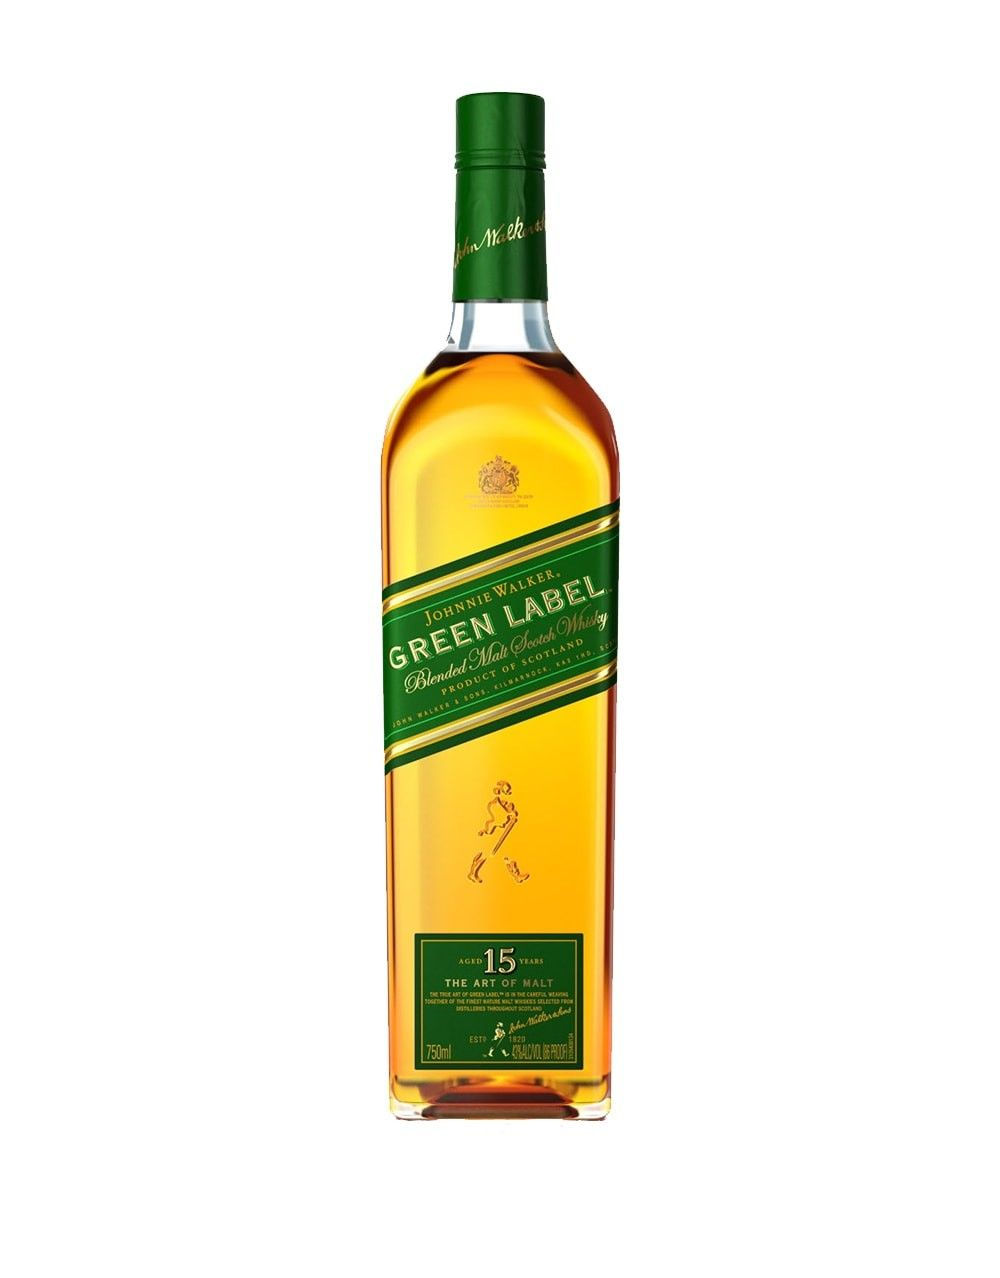 Johnnie Walker Green Label Scotch Whisky Buy Online Or